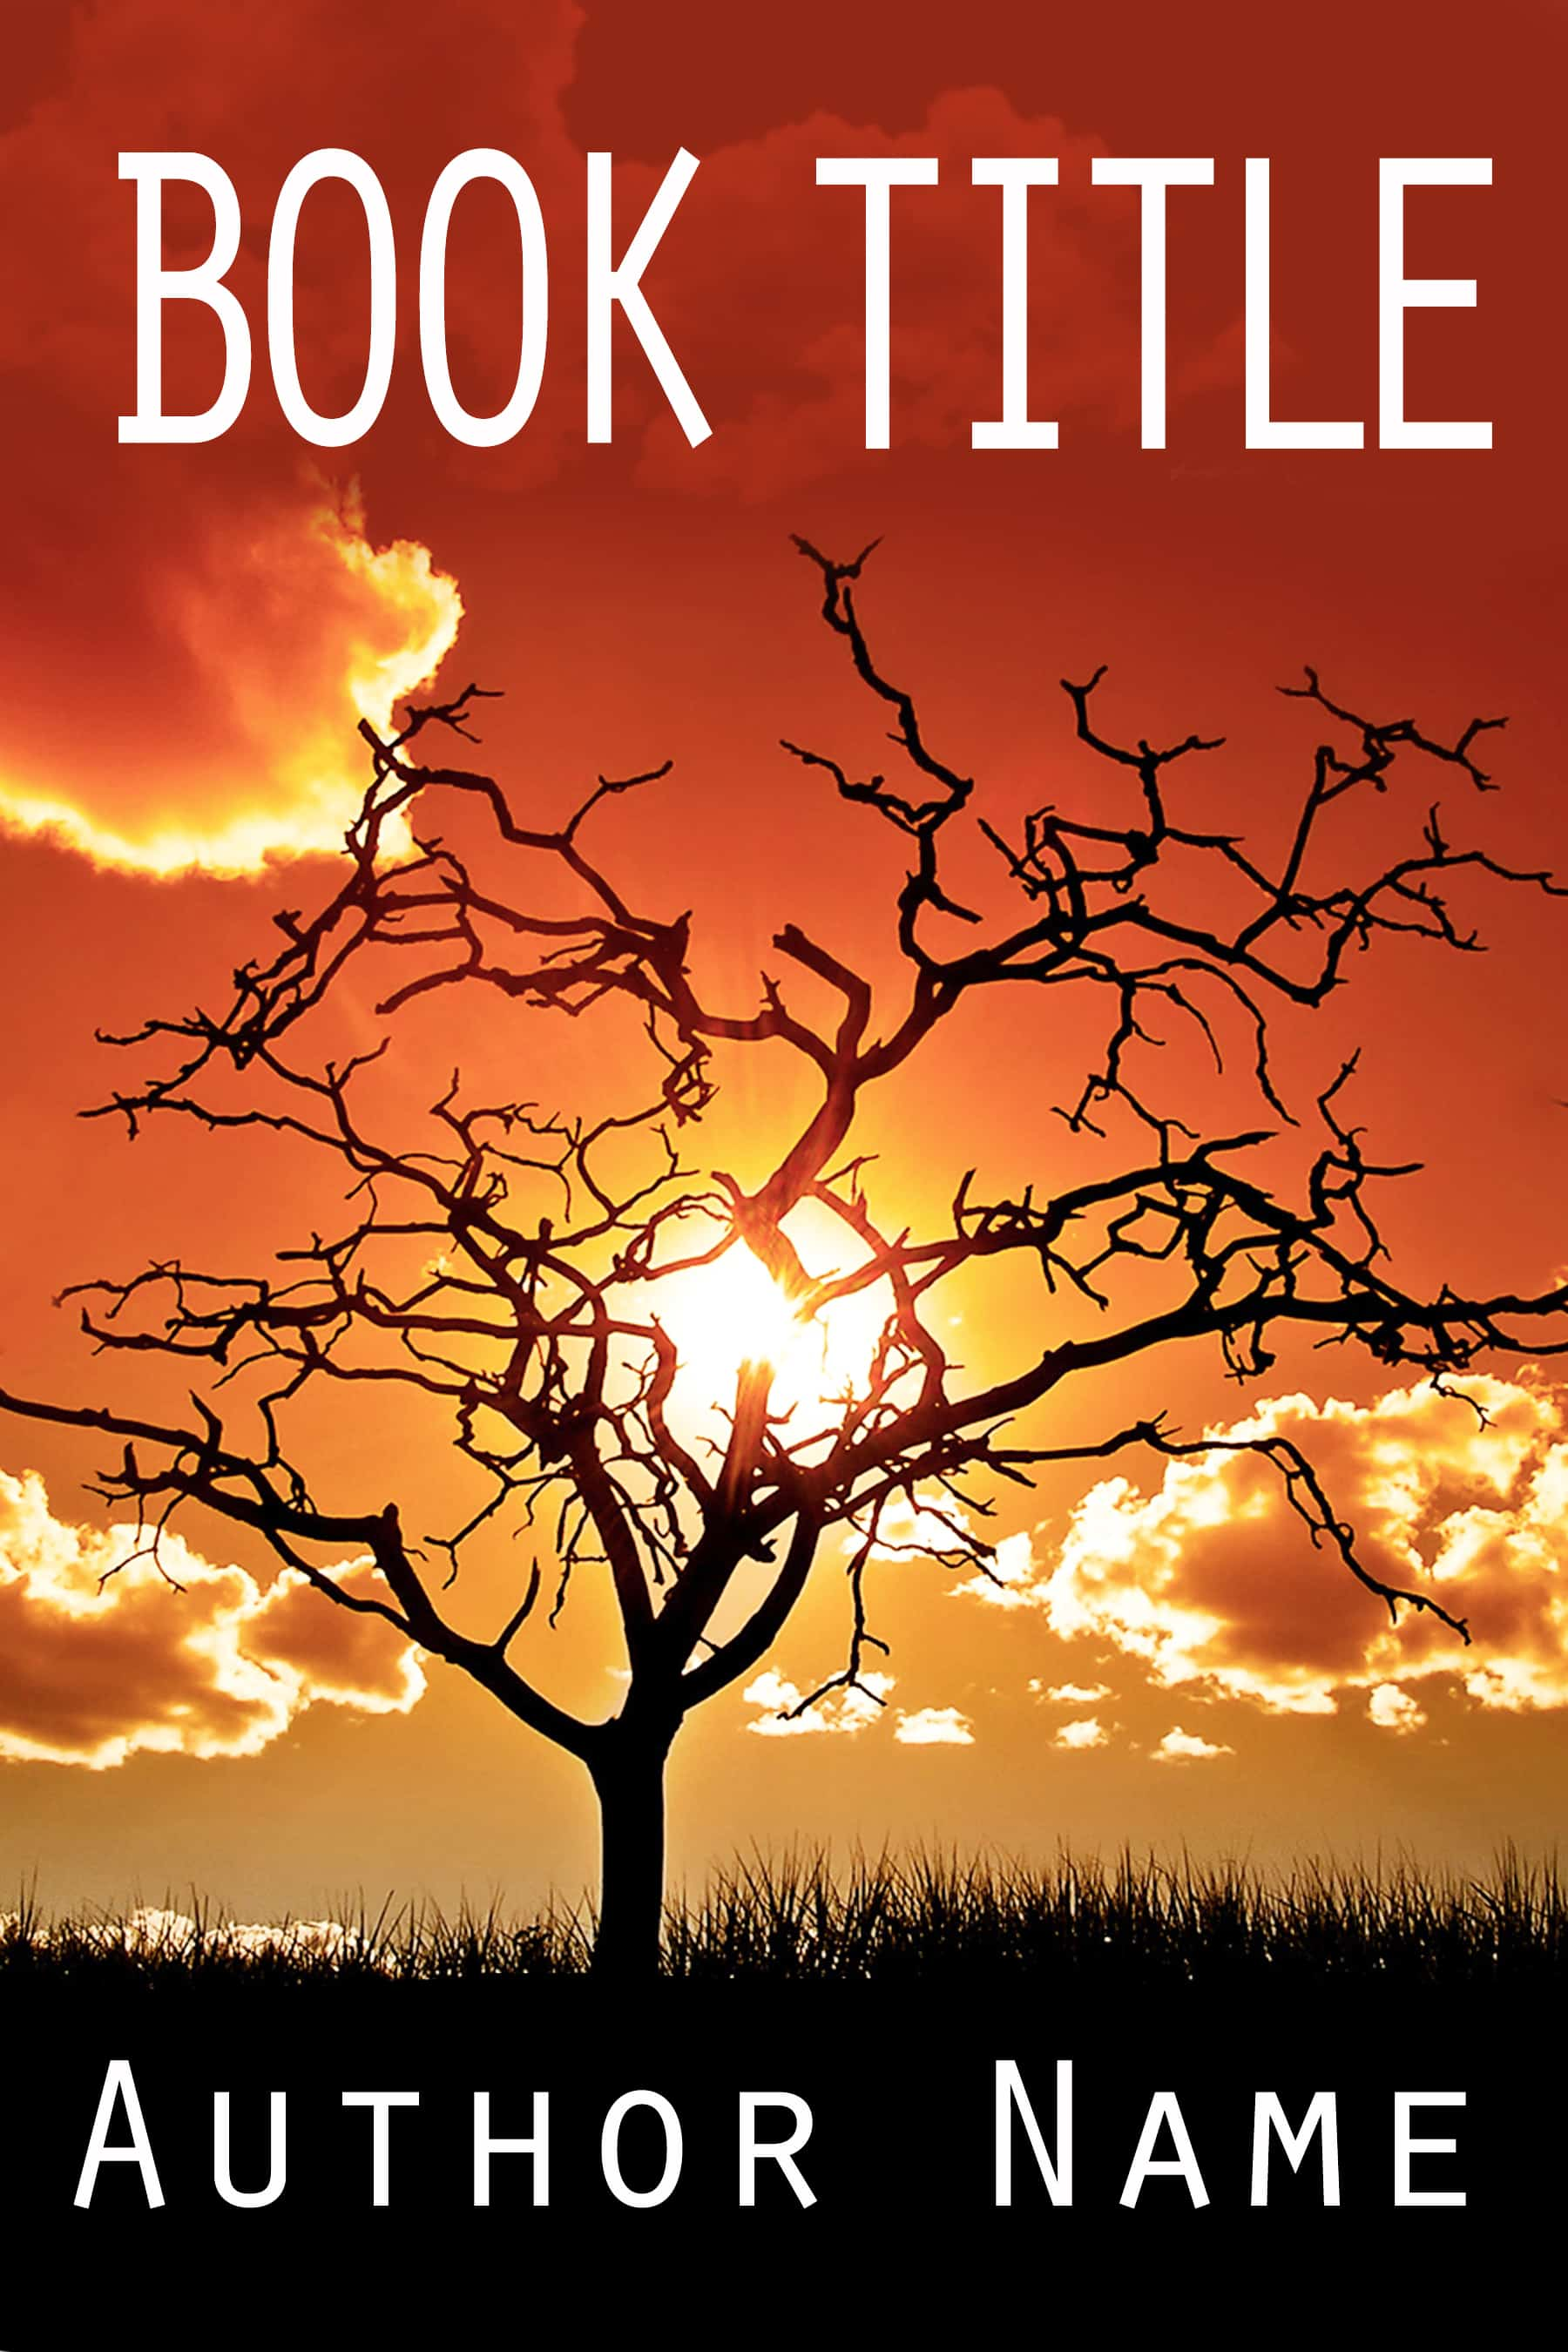 book of the dead trees